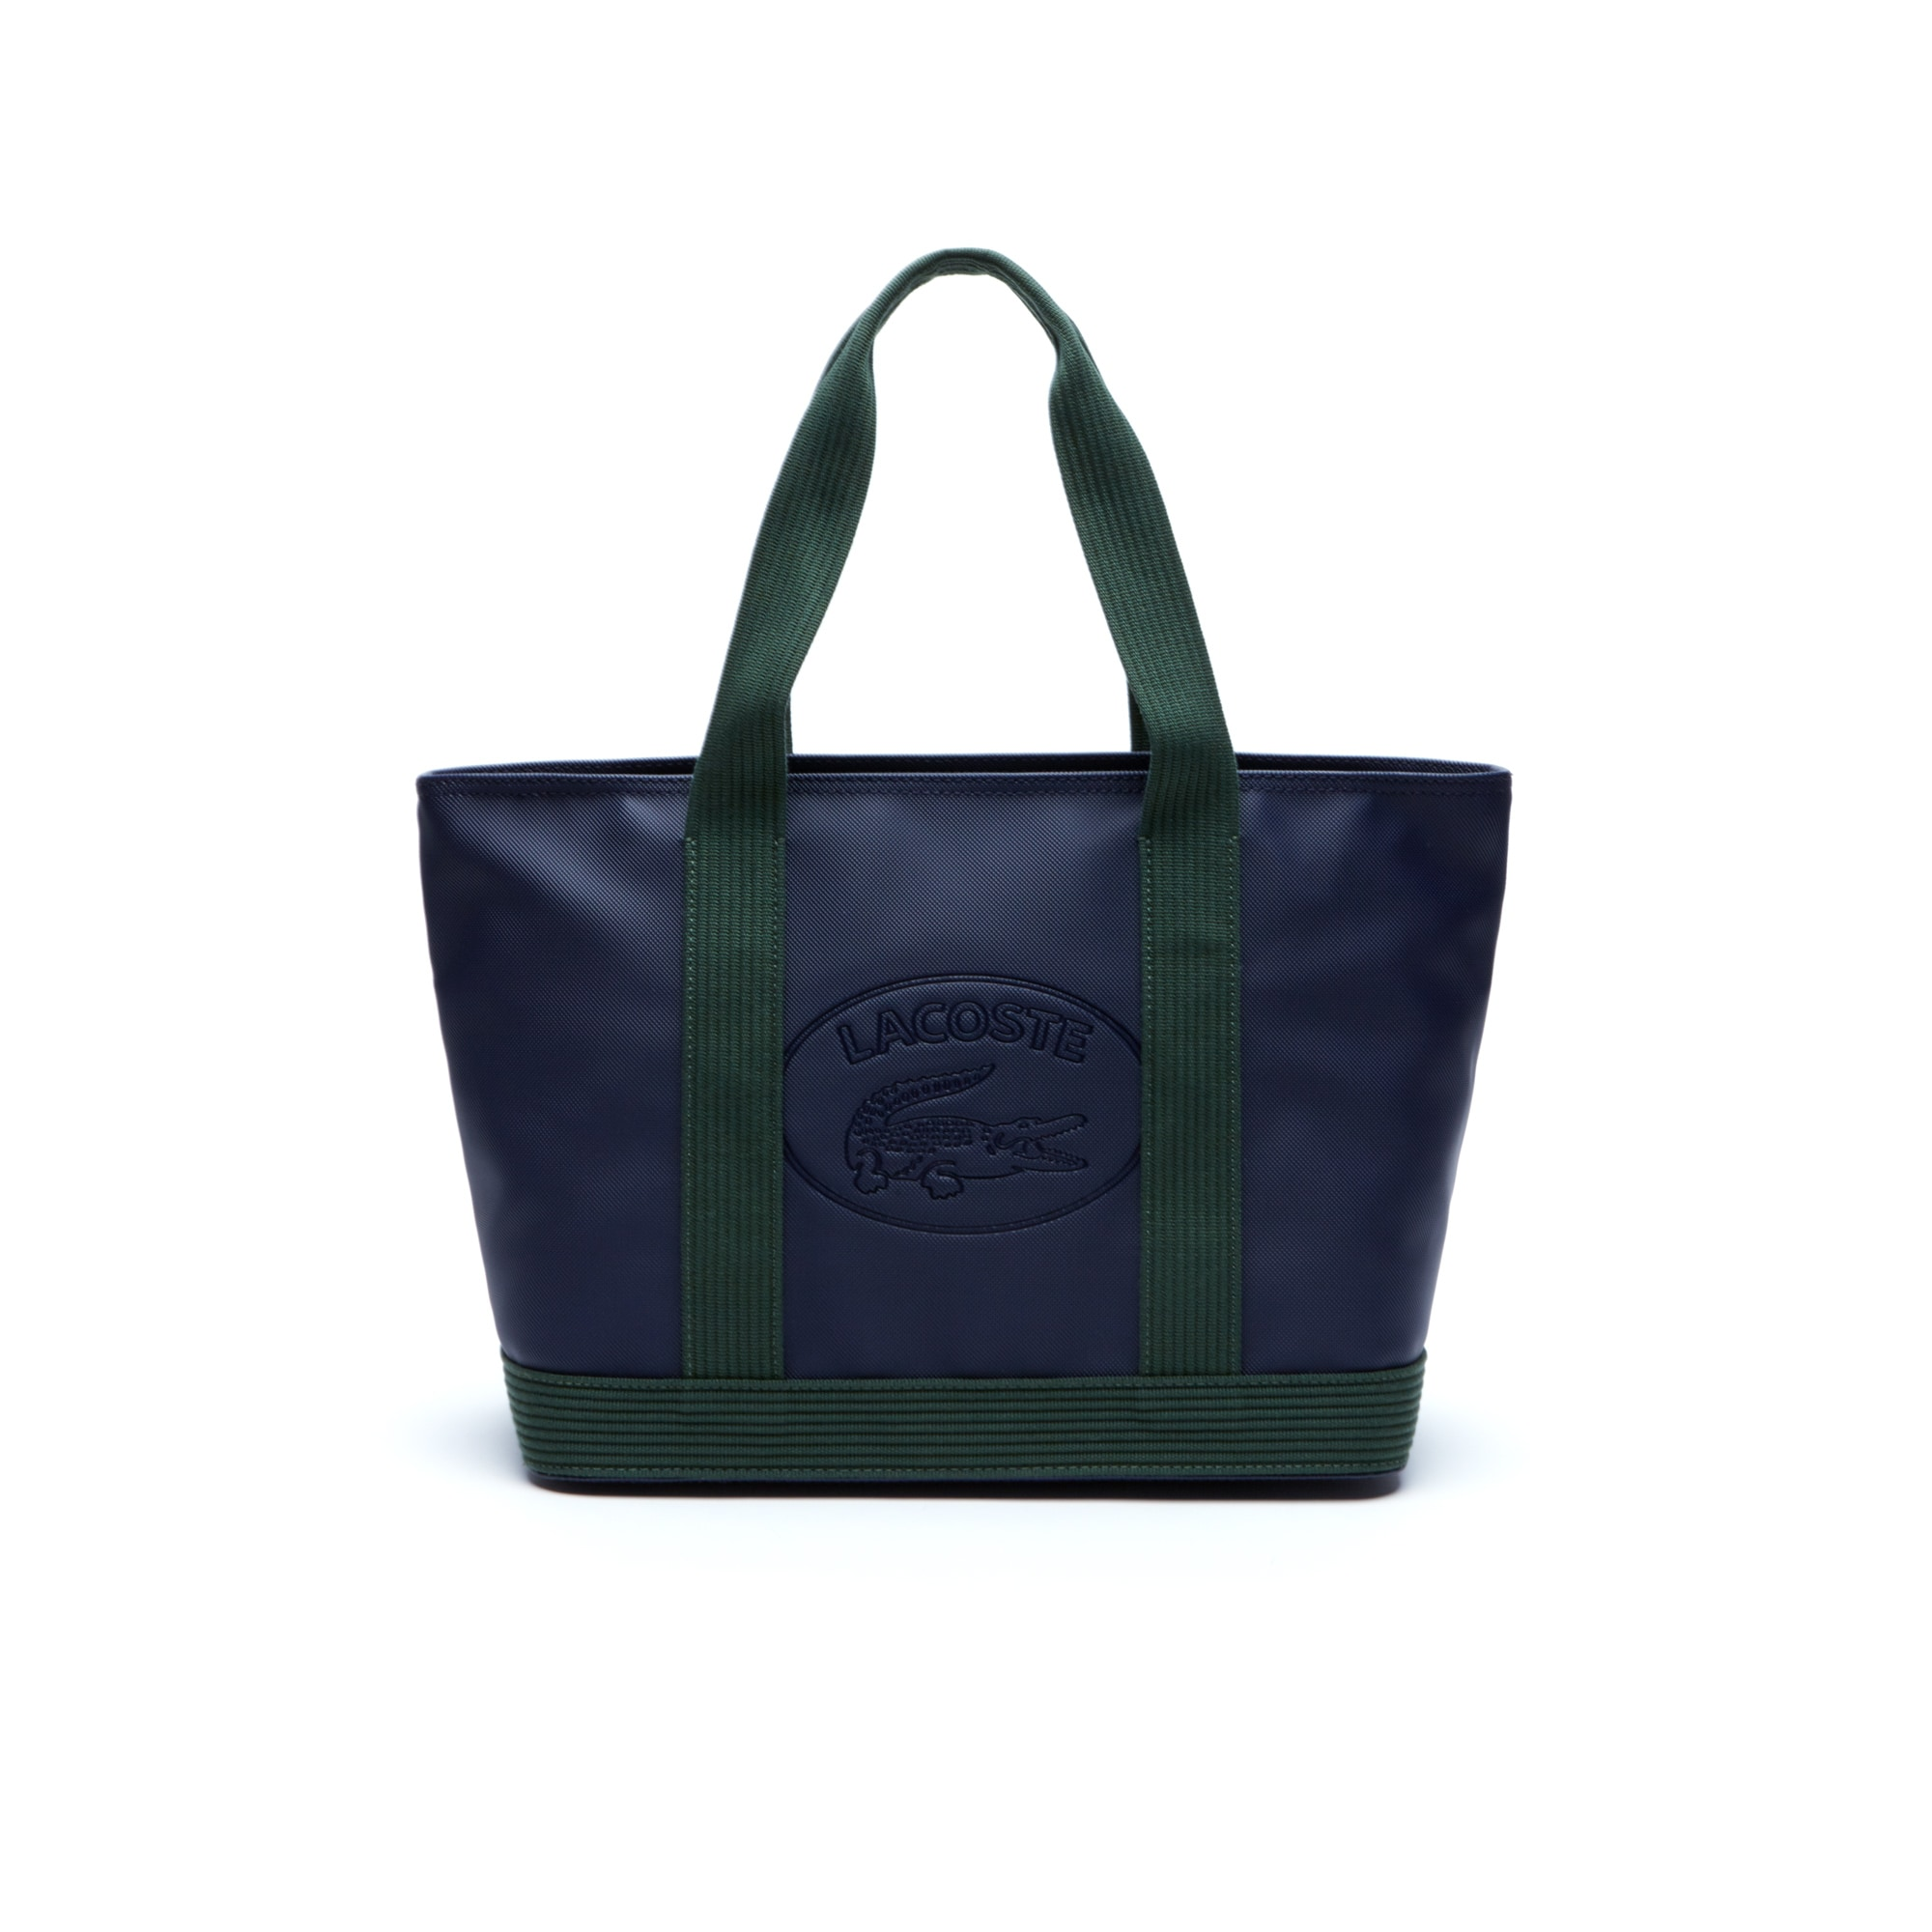 Shopping bag con zip Women's Classic in tela spalmata a piqué